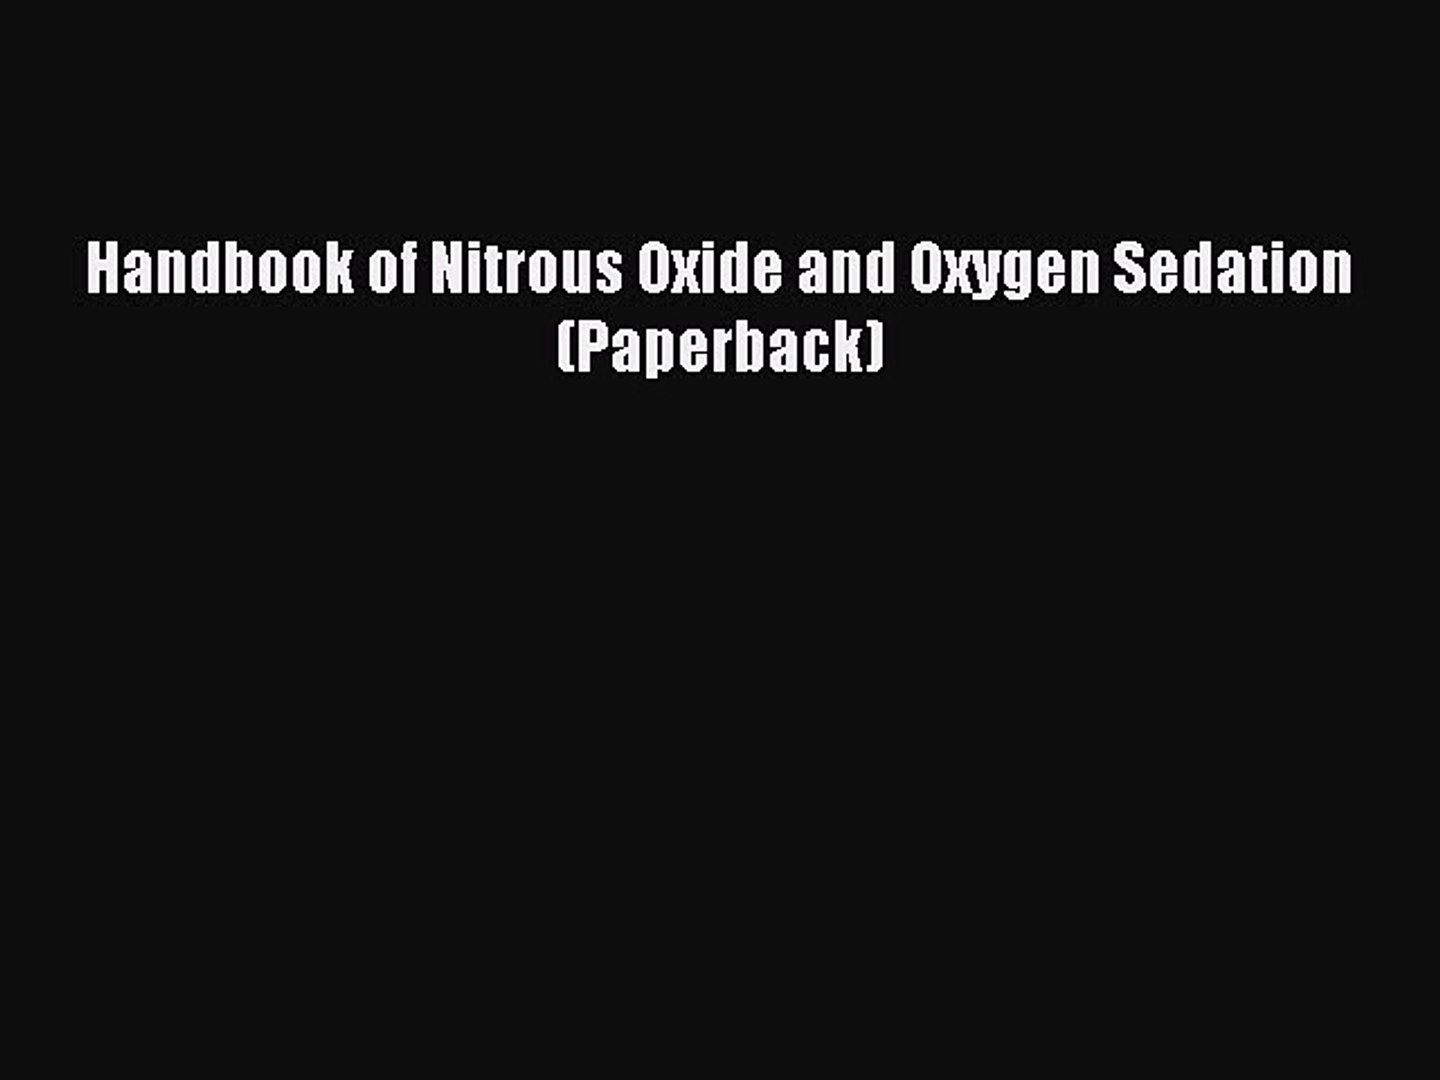 Handbook of Nitrous Oxide and Oxygen Sedation, 4e